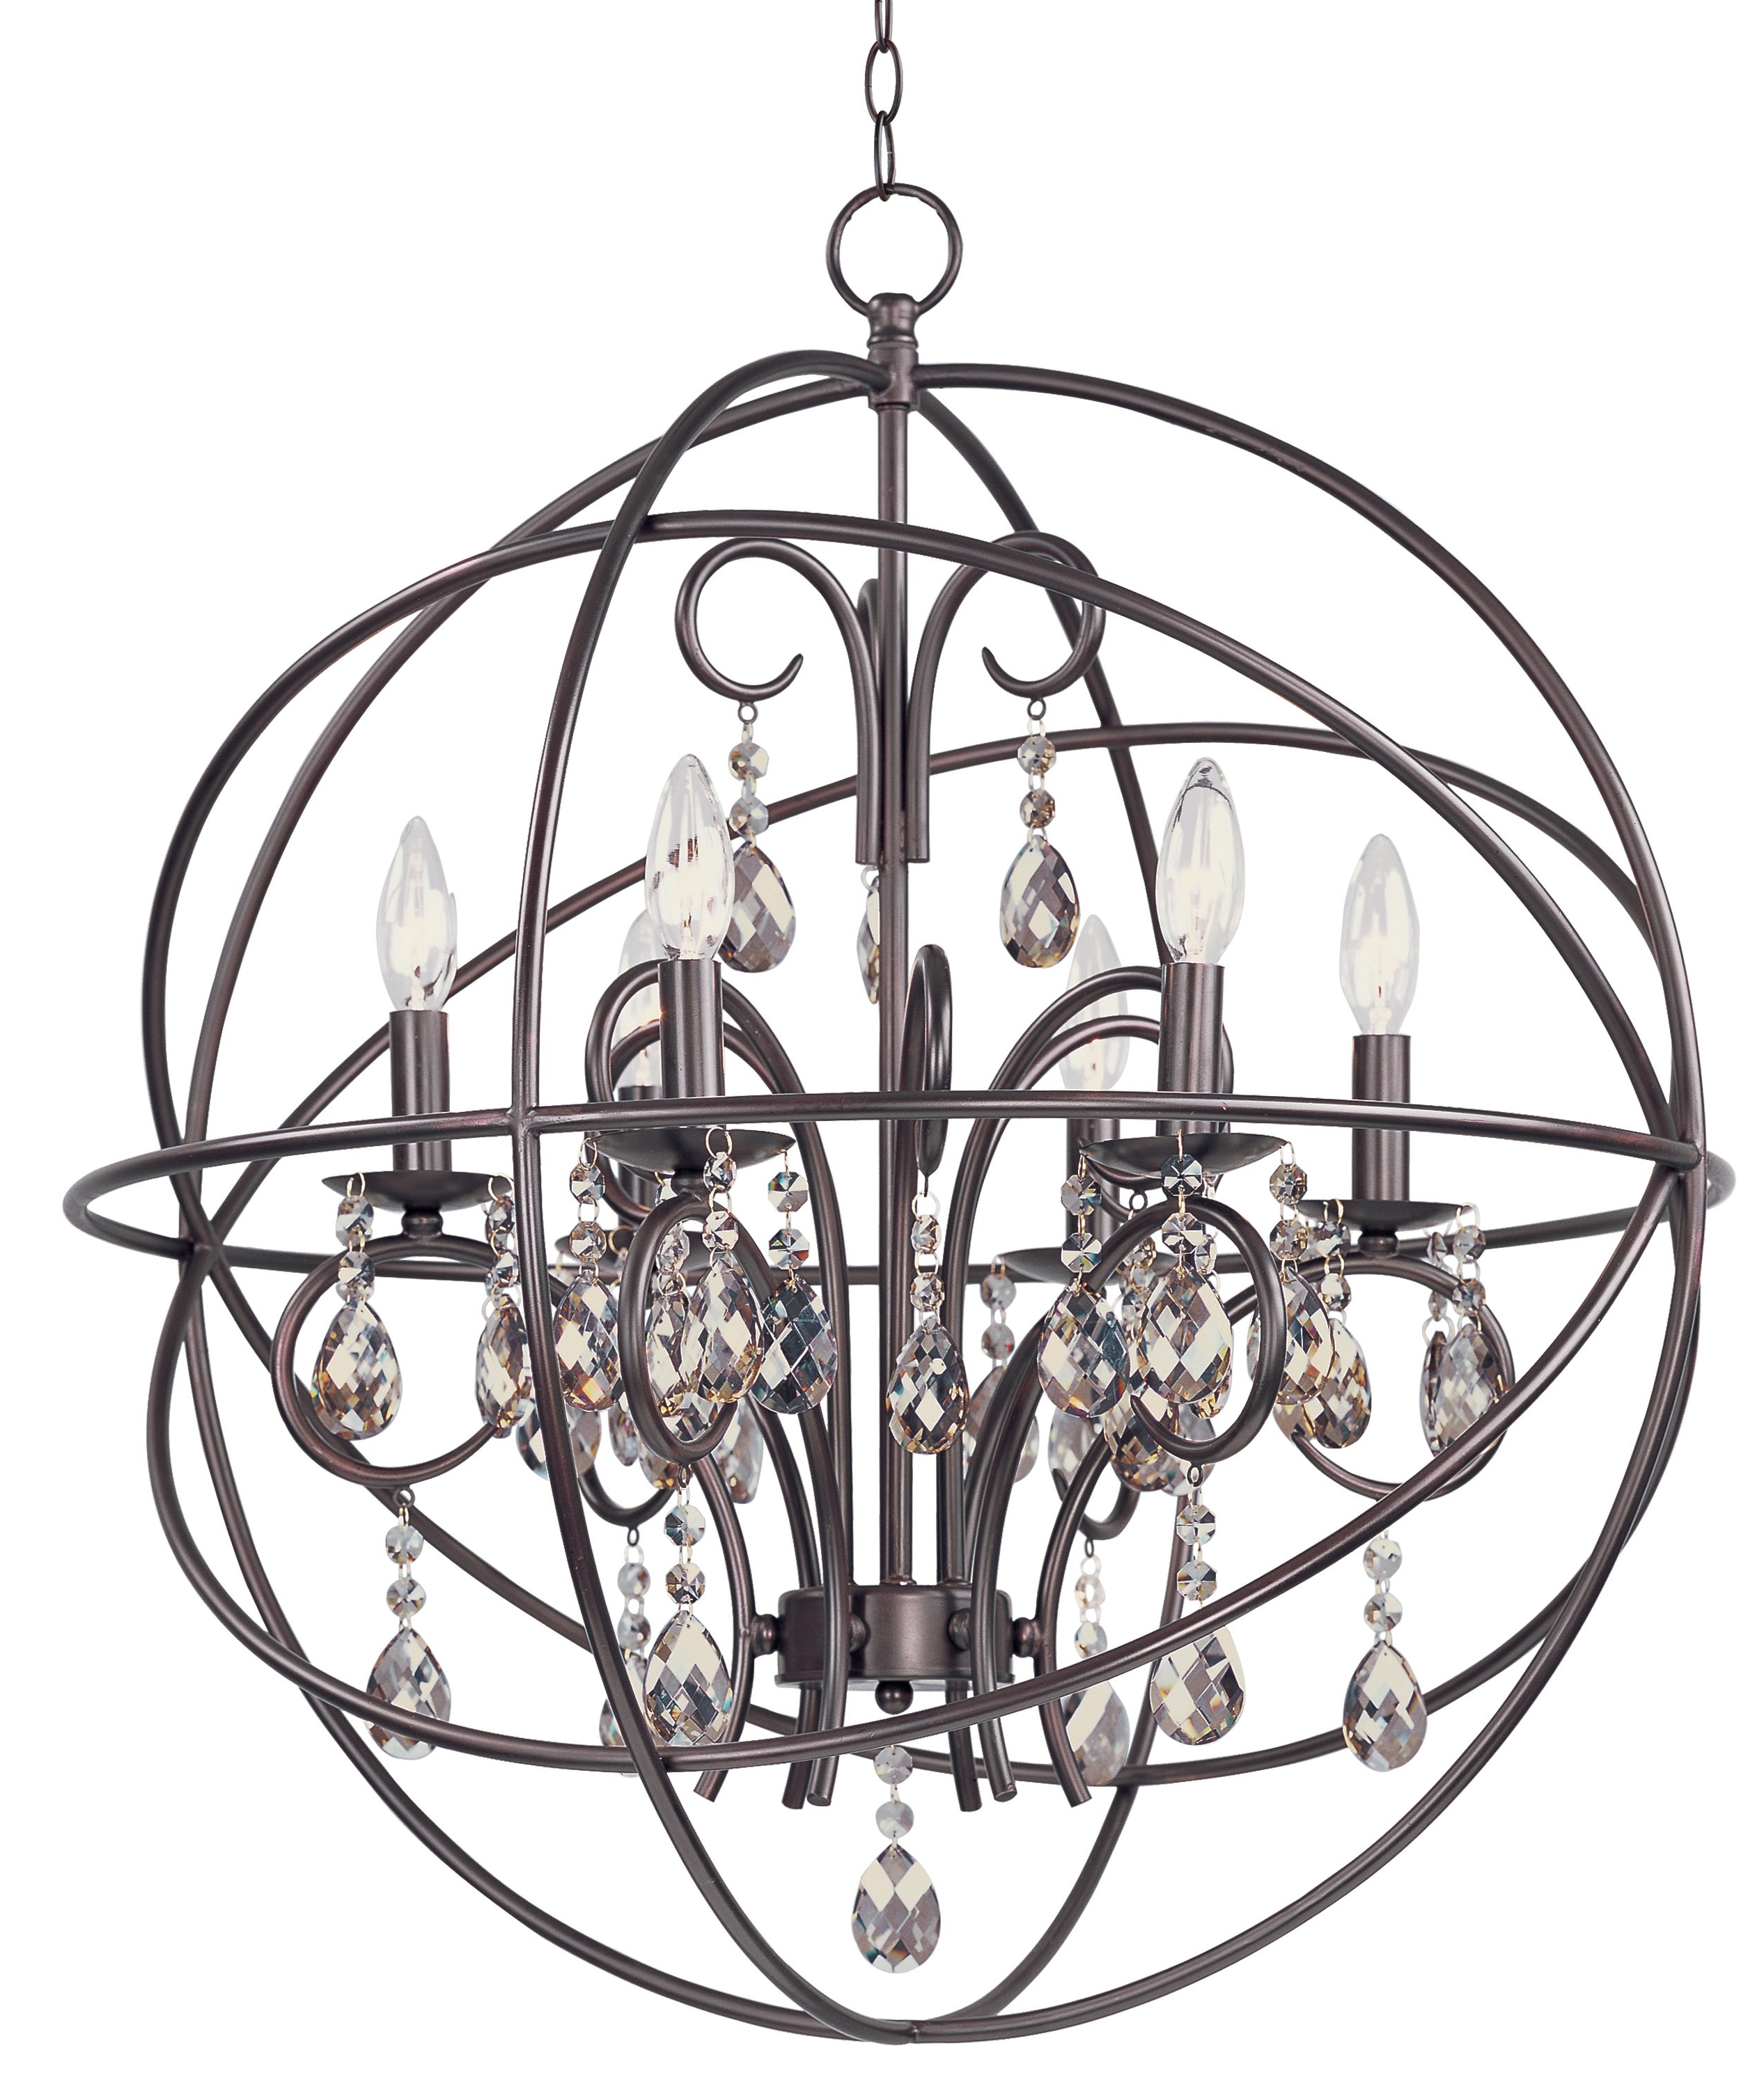 Alden 6 Light Globe Chandeliers With Regard To Most Popular Alden 6 Light Globe Chandelier (View 3 of 25)